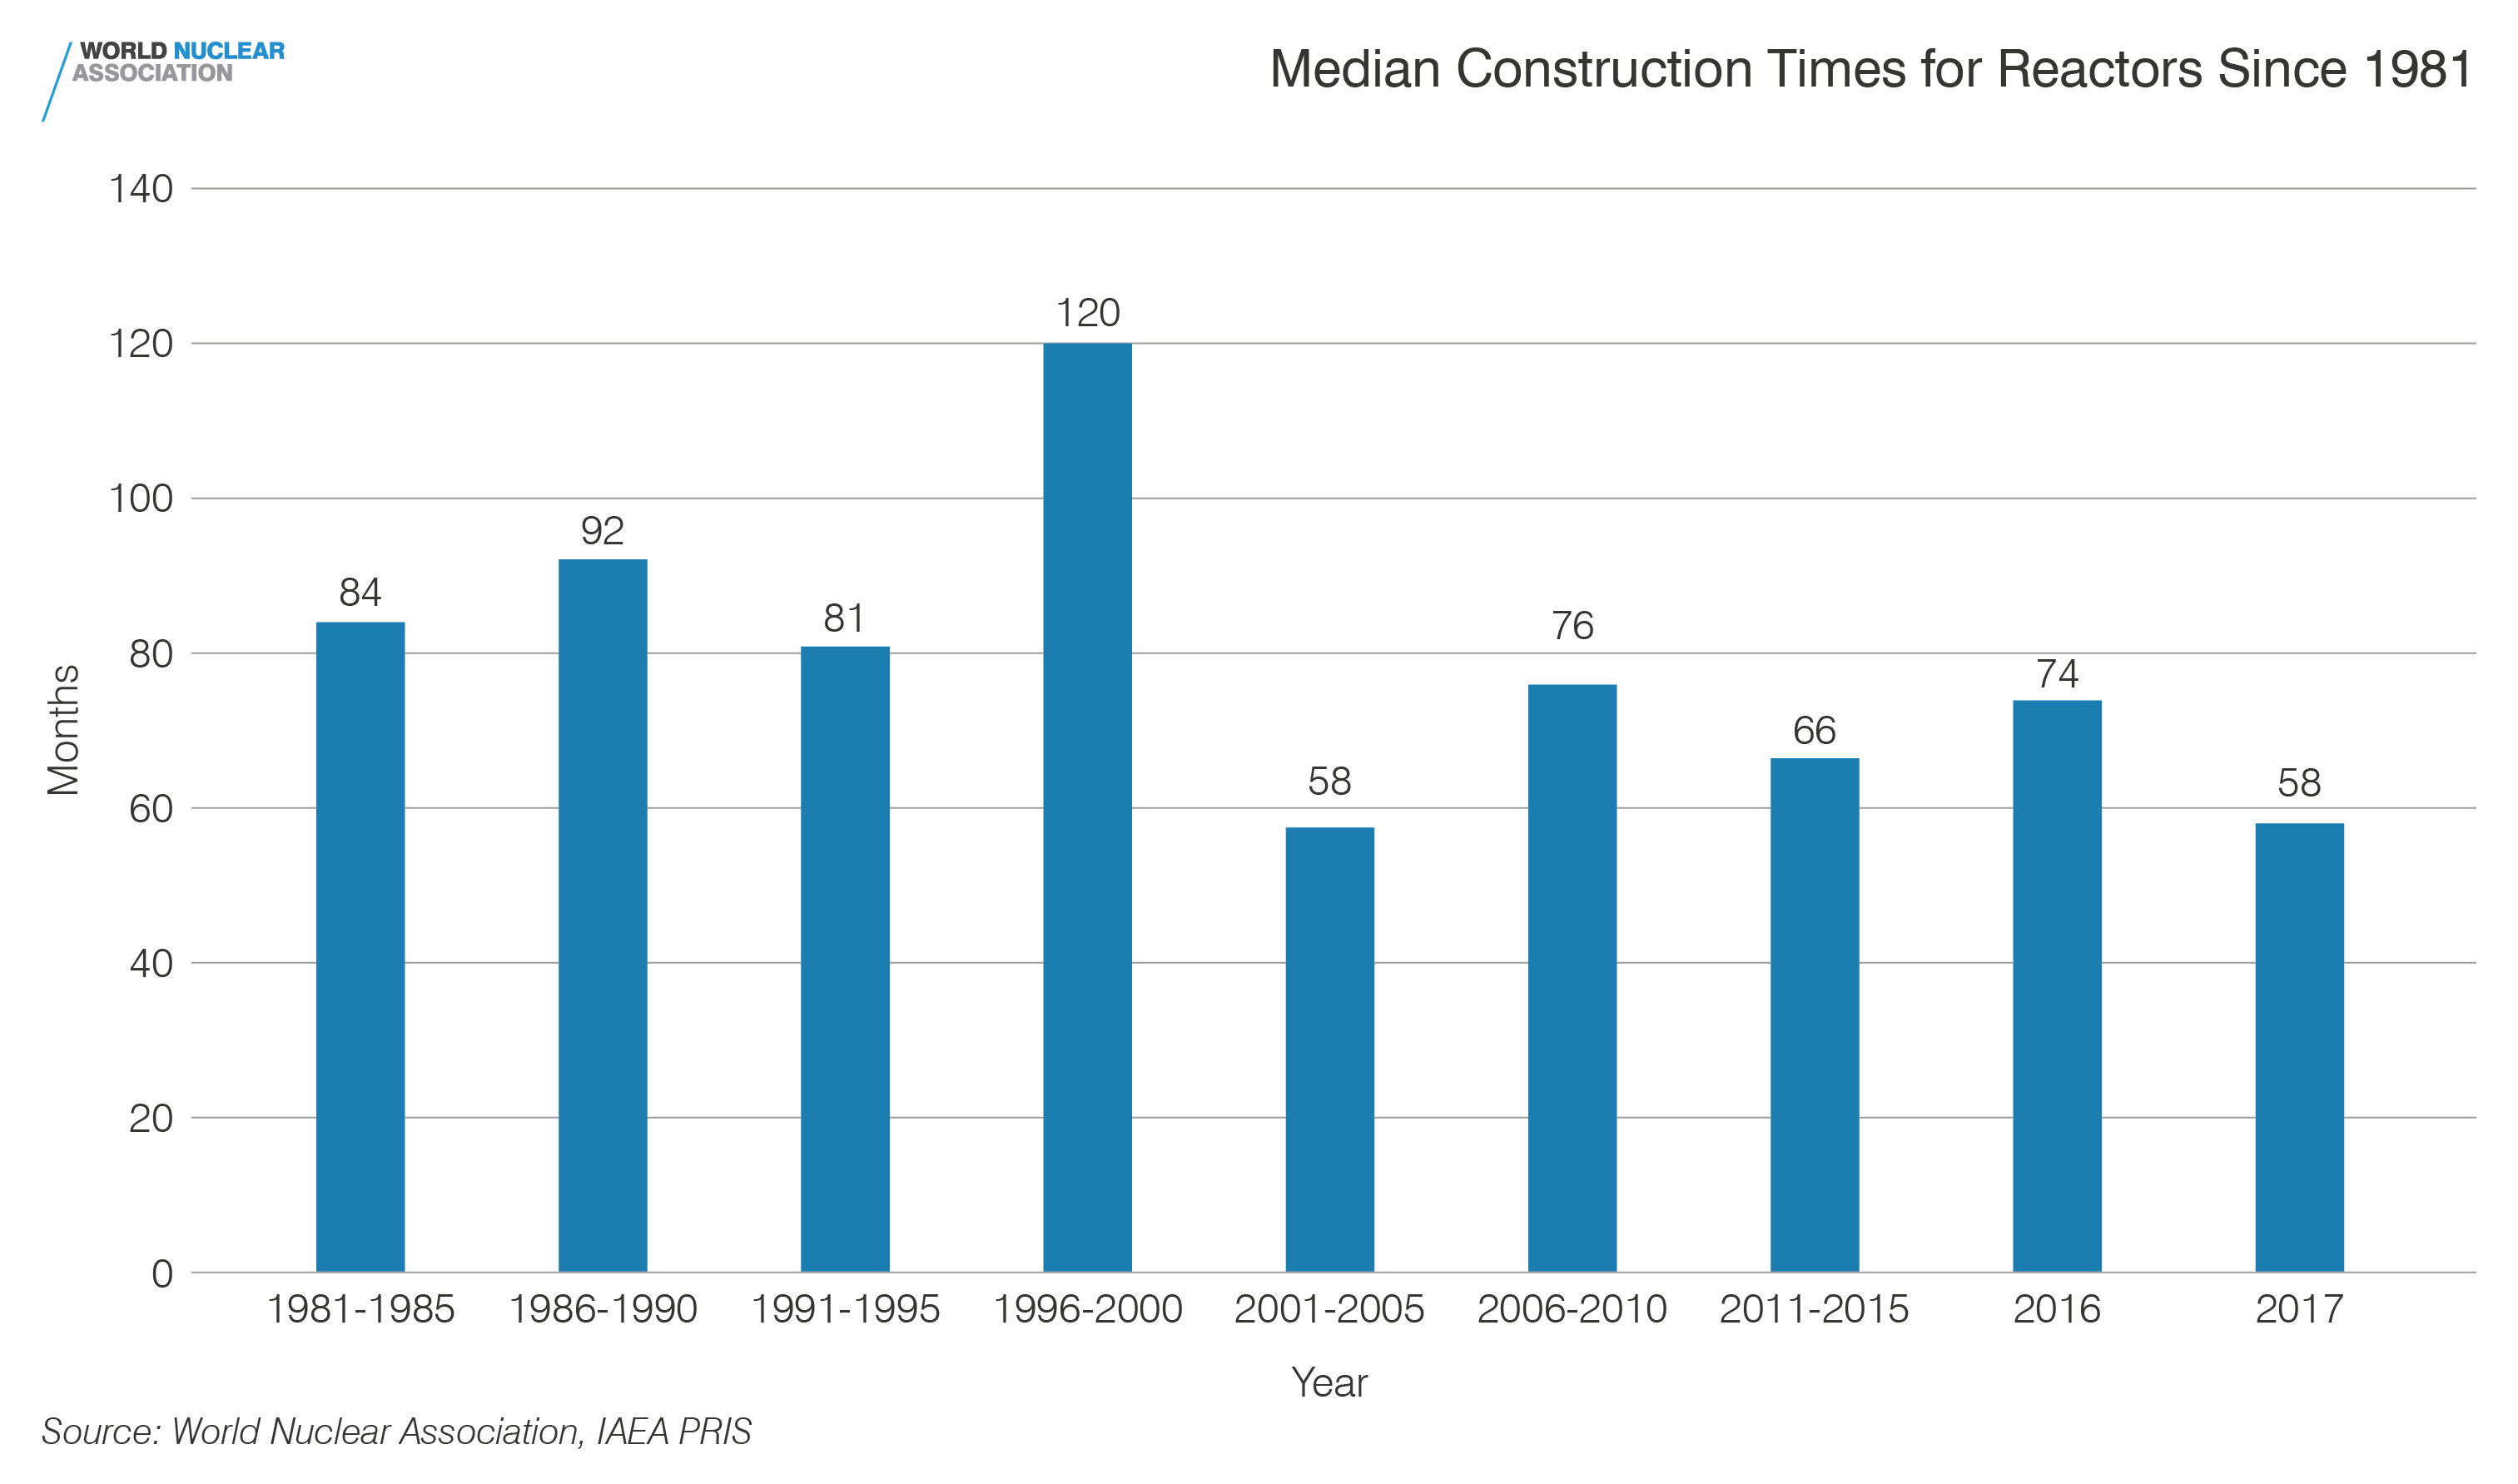 Median construction times for reactors since 1981